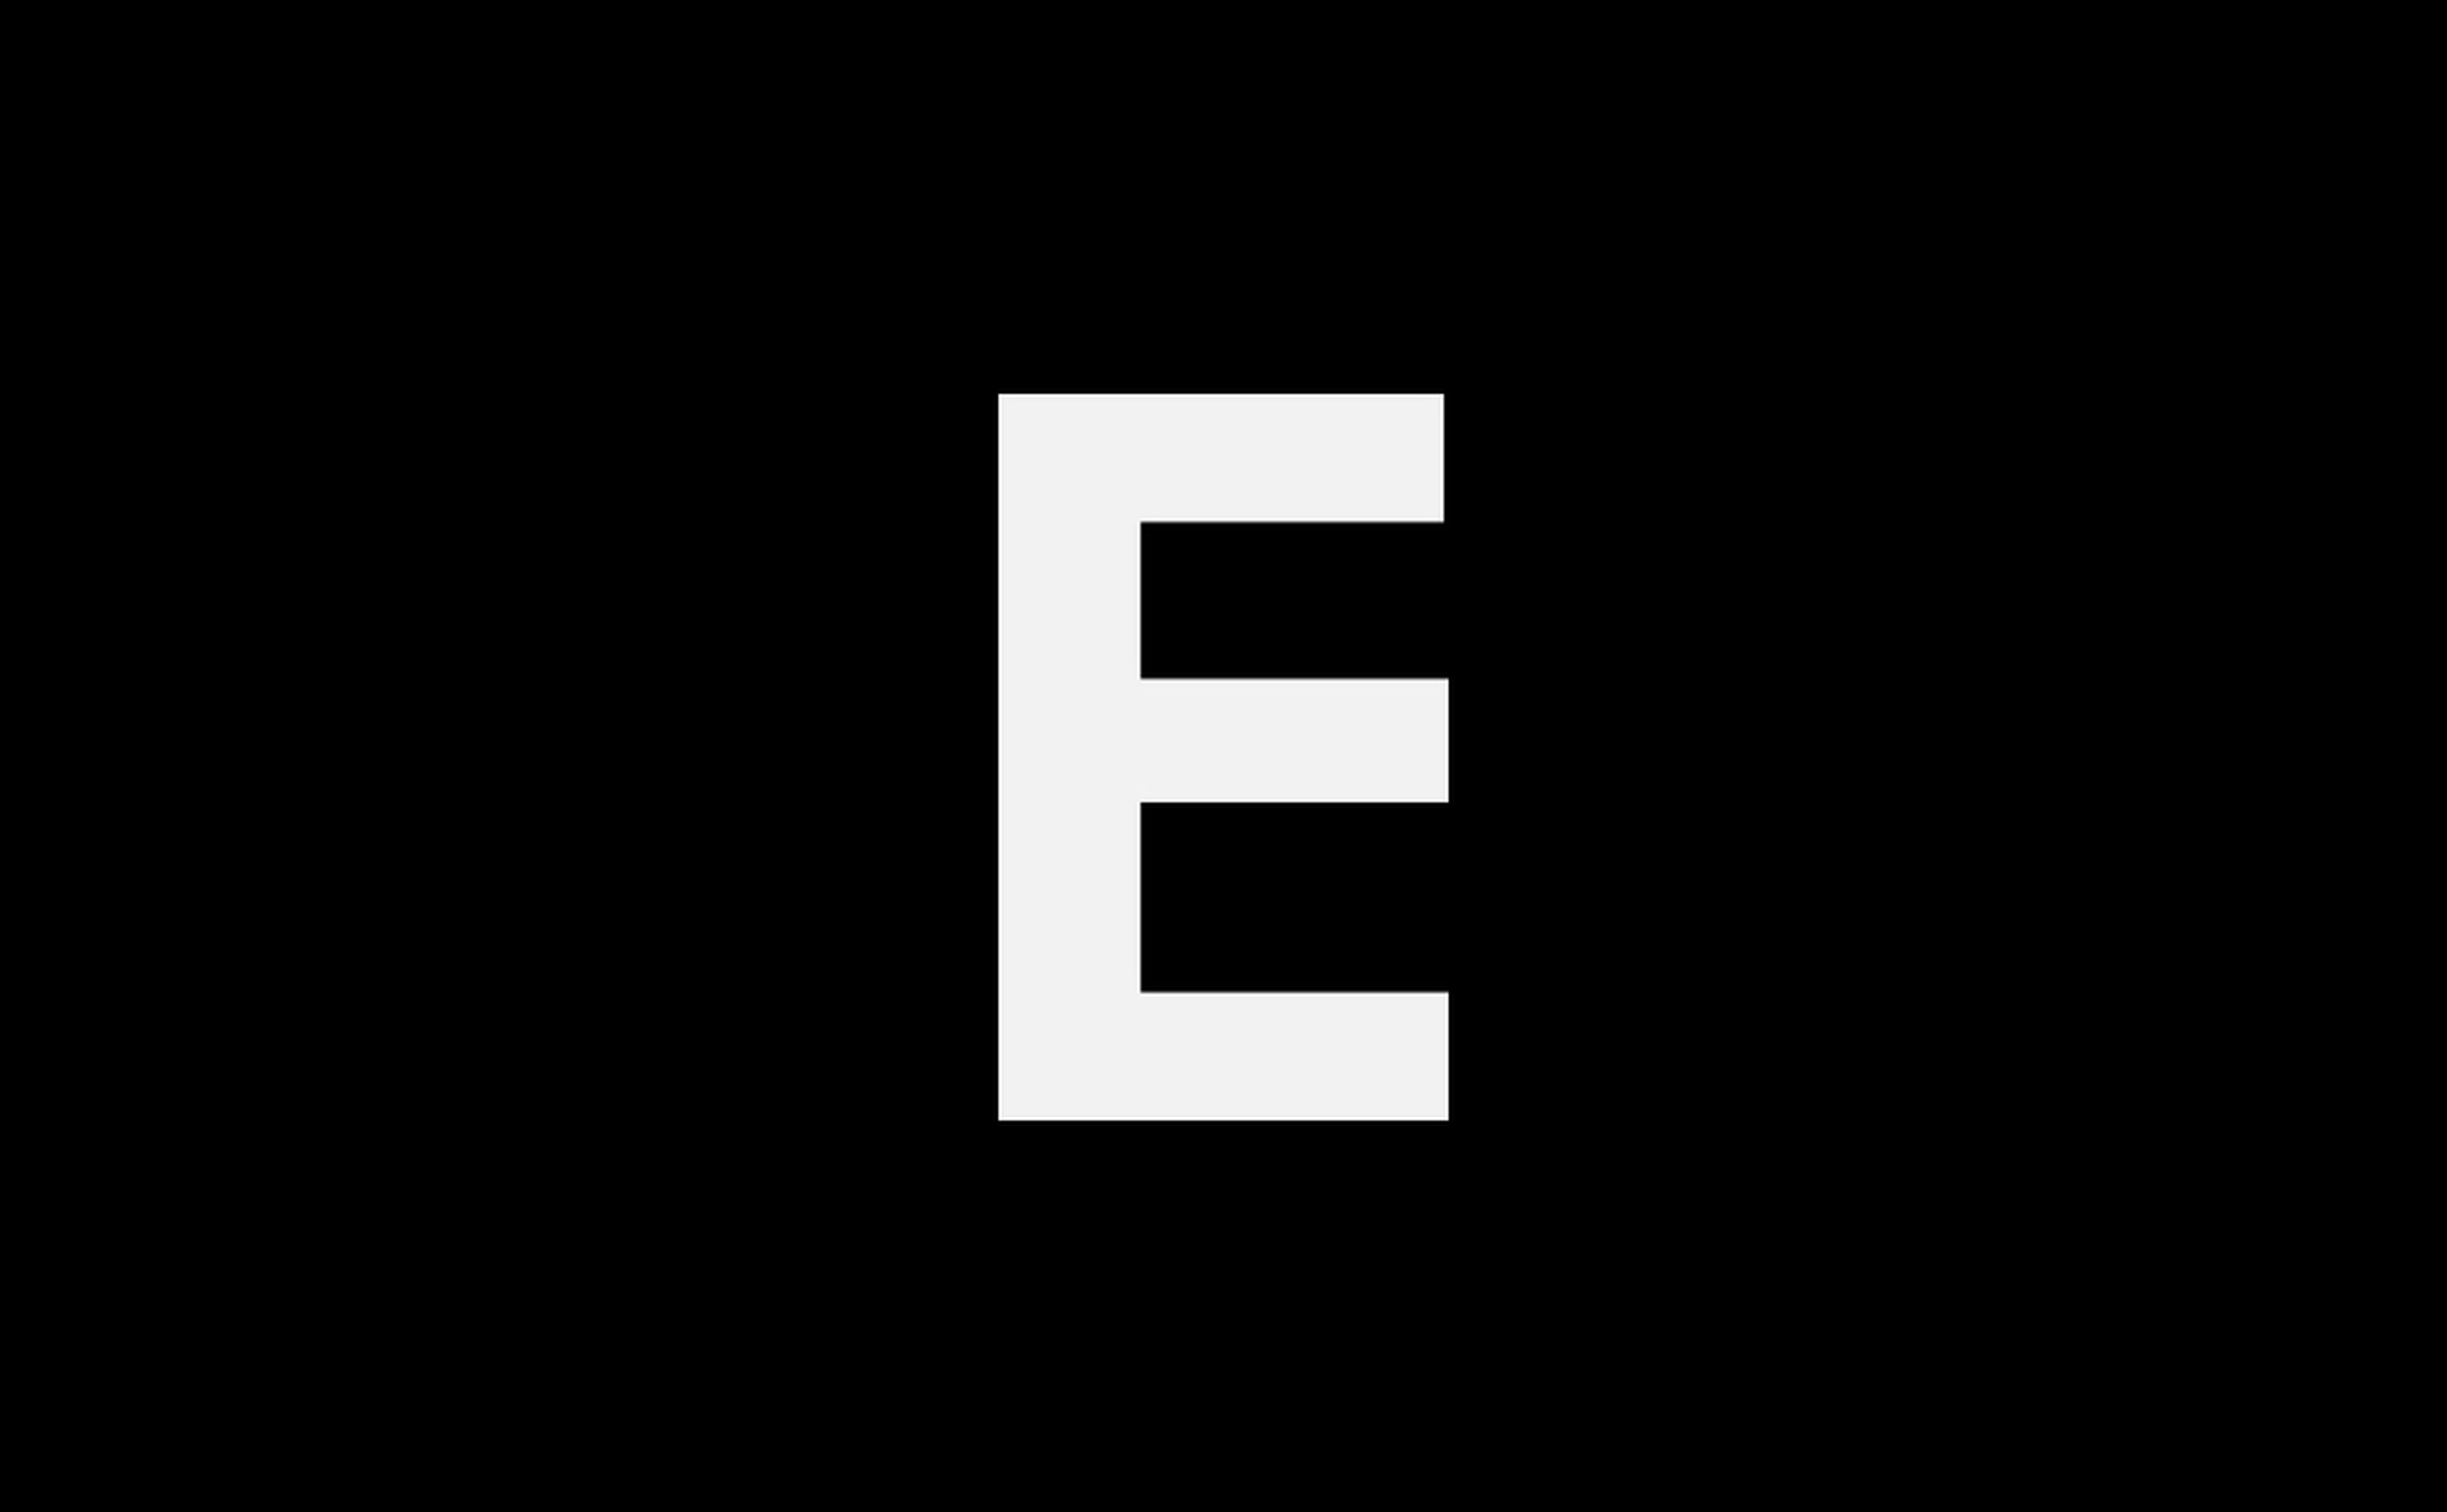 SILHOUETTE PERSON STANDING ON ILLUMINATED STAGE AT CONCERT